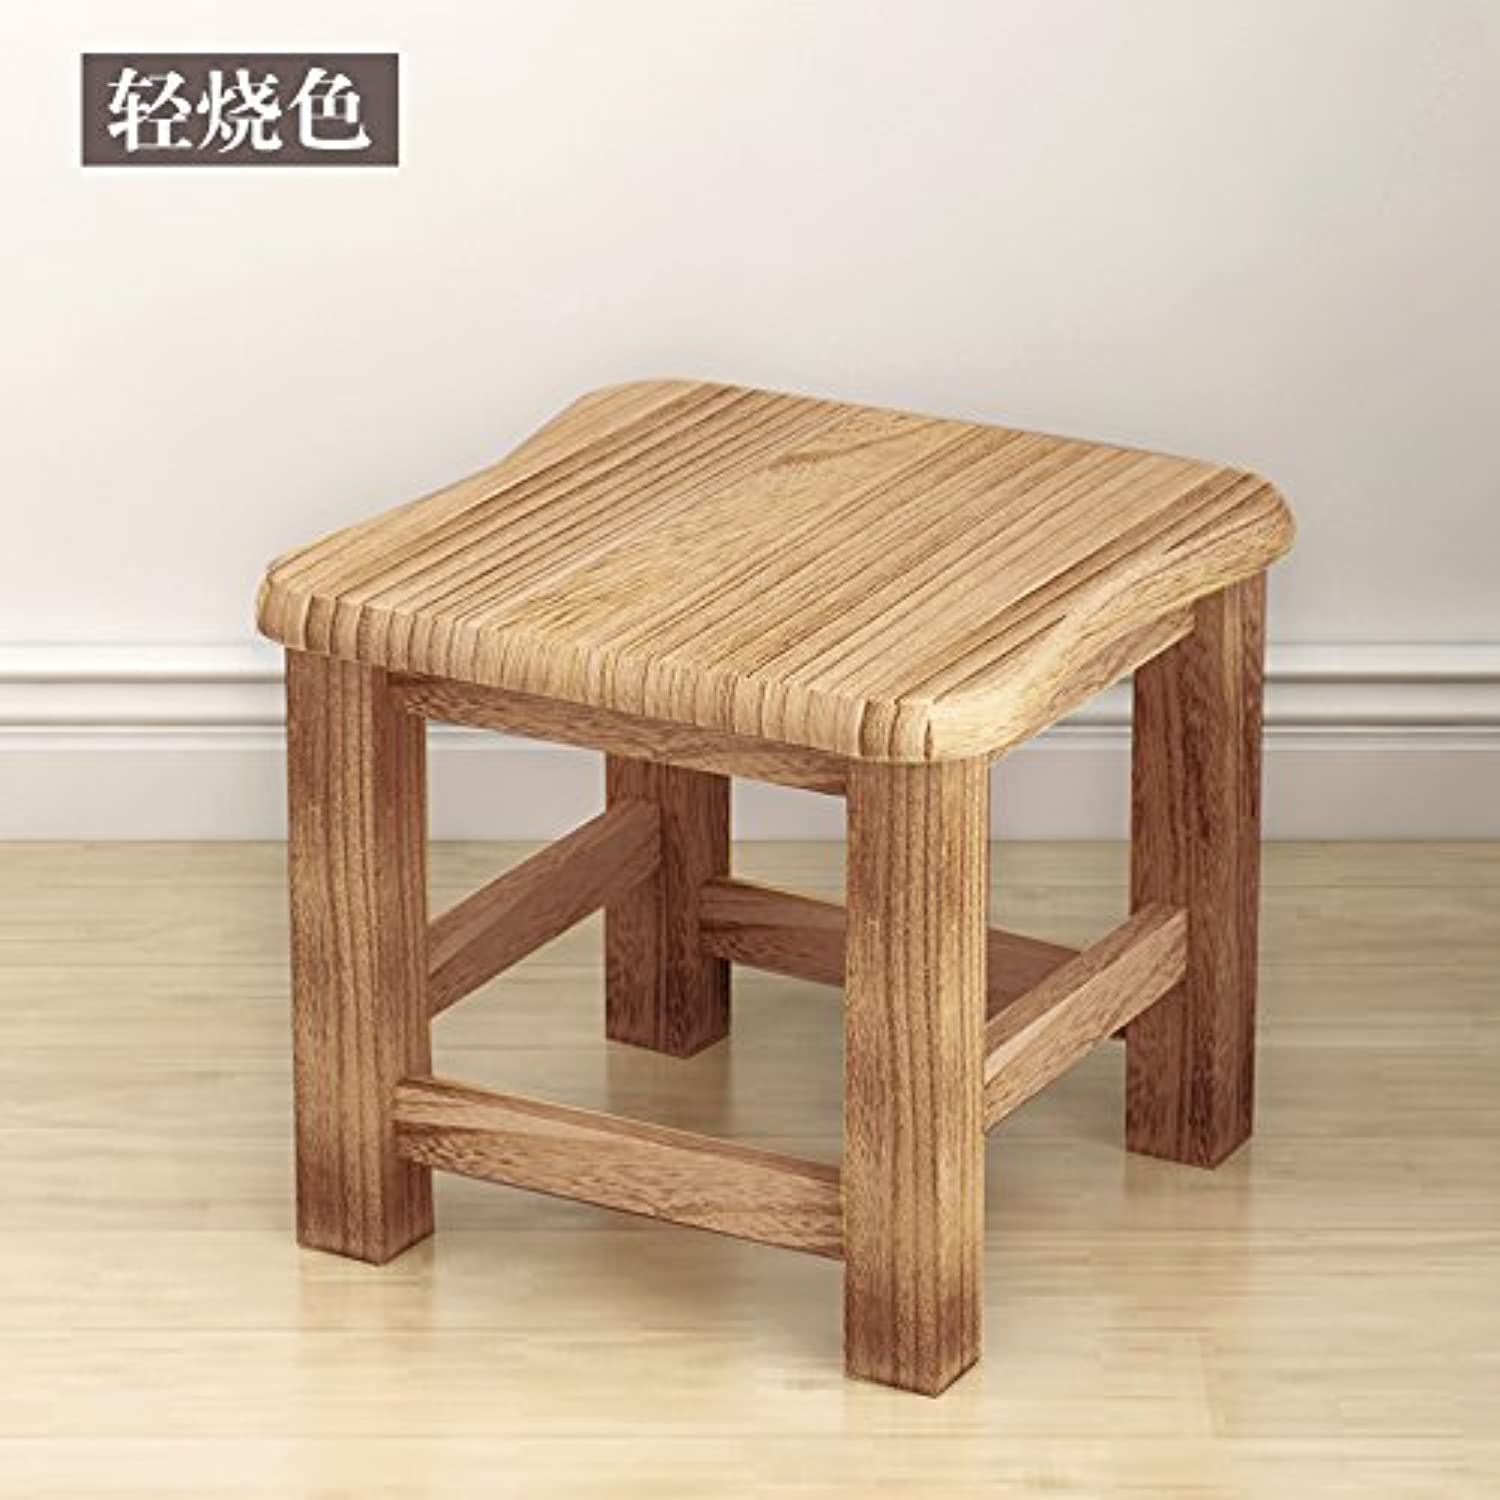 Dana Carrie Small Benches stools Home Modern Stylish Creative Benches on a Low stool Solid Wood Home Wood Bench,